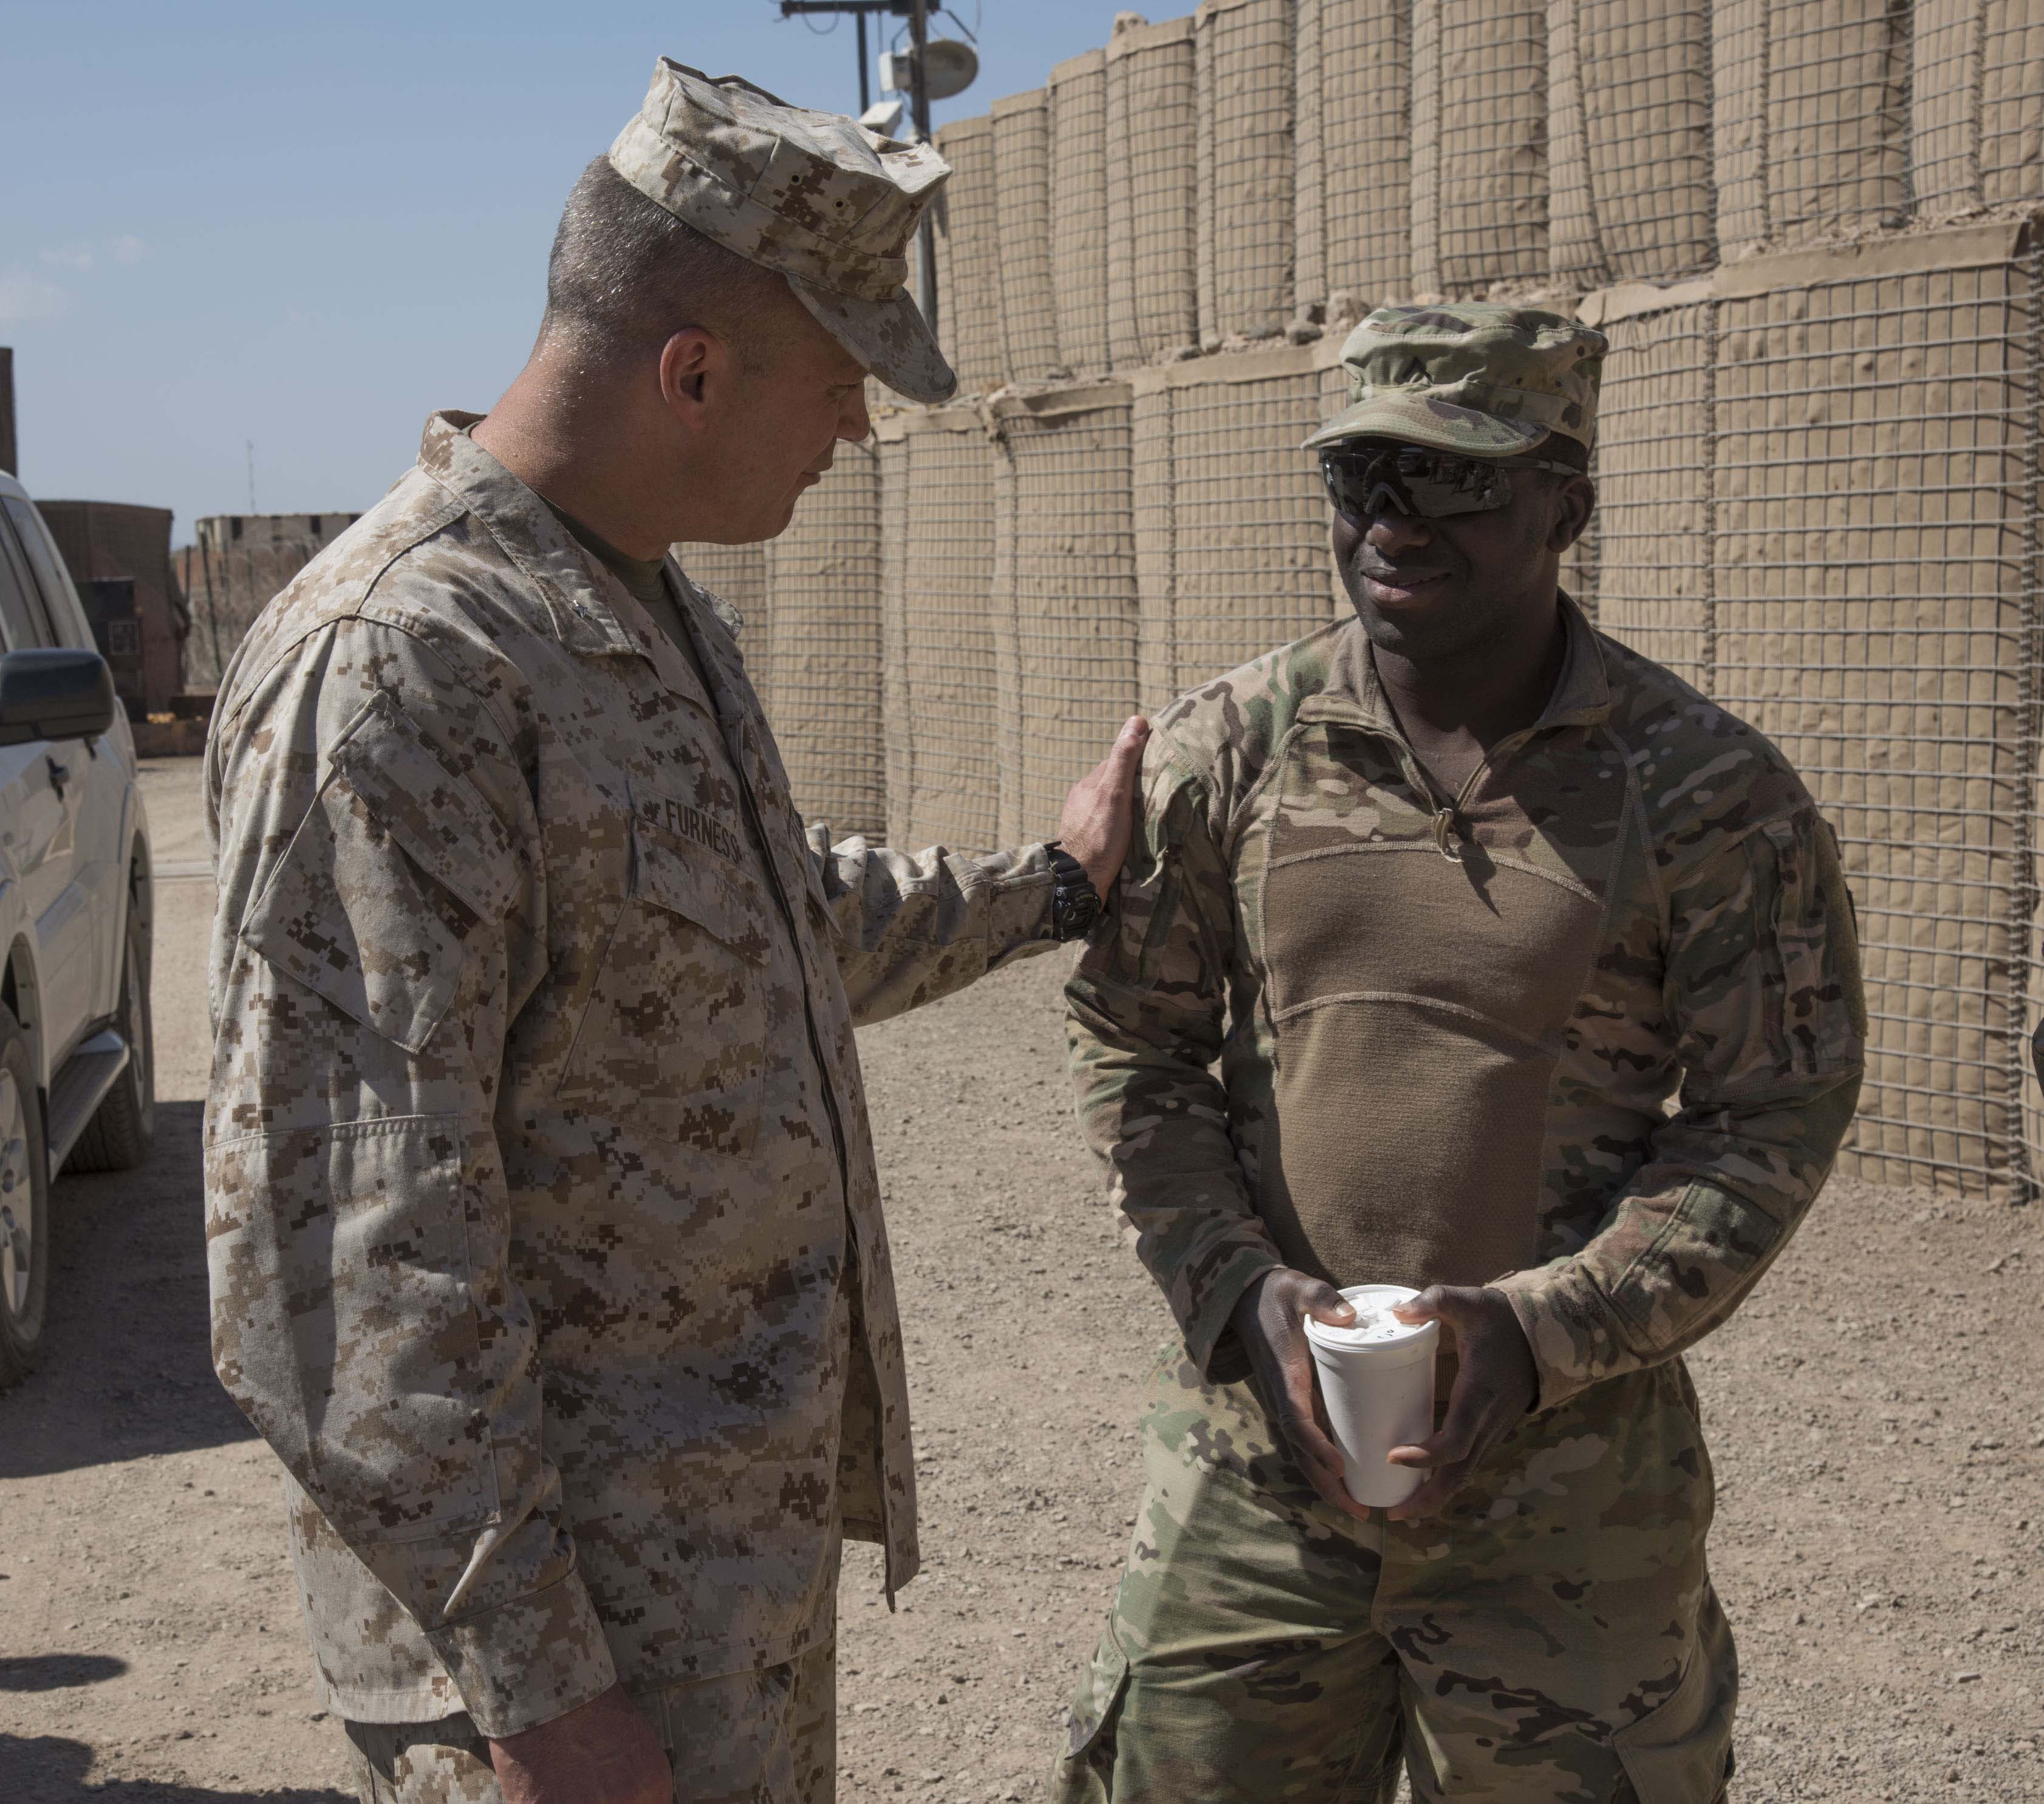 U.S. Marine Corps Brig. Gen. David J. Furness, commander of Combined Joint Task Force – Horn of Africa, visits with troops in Chabelley, Djibouti, Dec. 25, 2017.  Furness spent the afternoon meeting with service members and thanking them for their continued service and sacrifice throughout the holiday season. (U.S. Air National Guard photo by Staff Sgt. Allyson L. Manners)